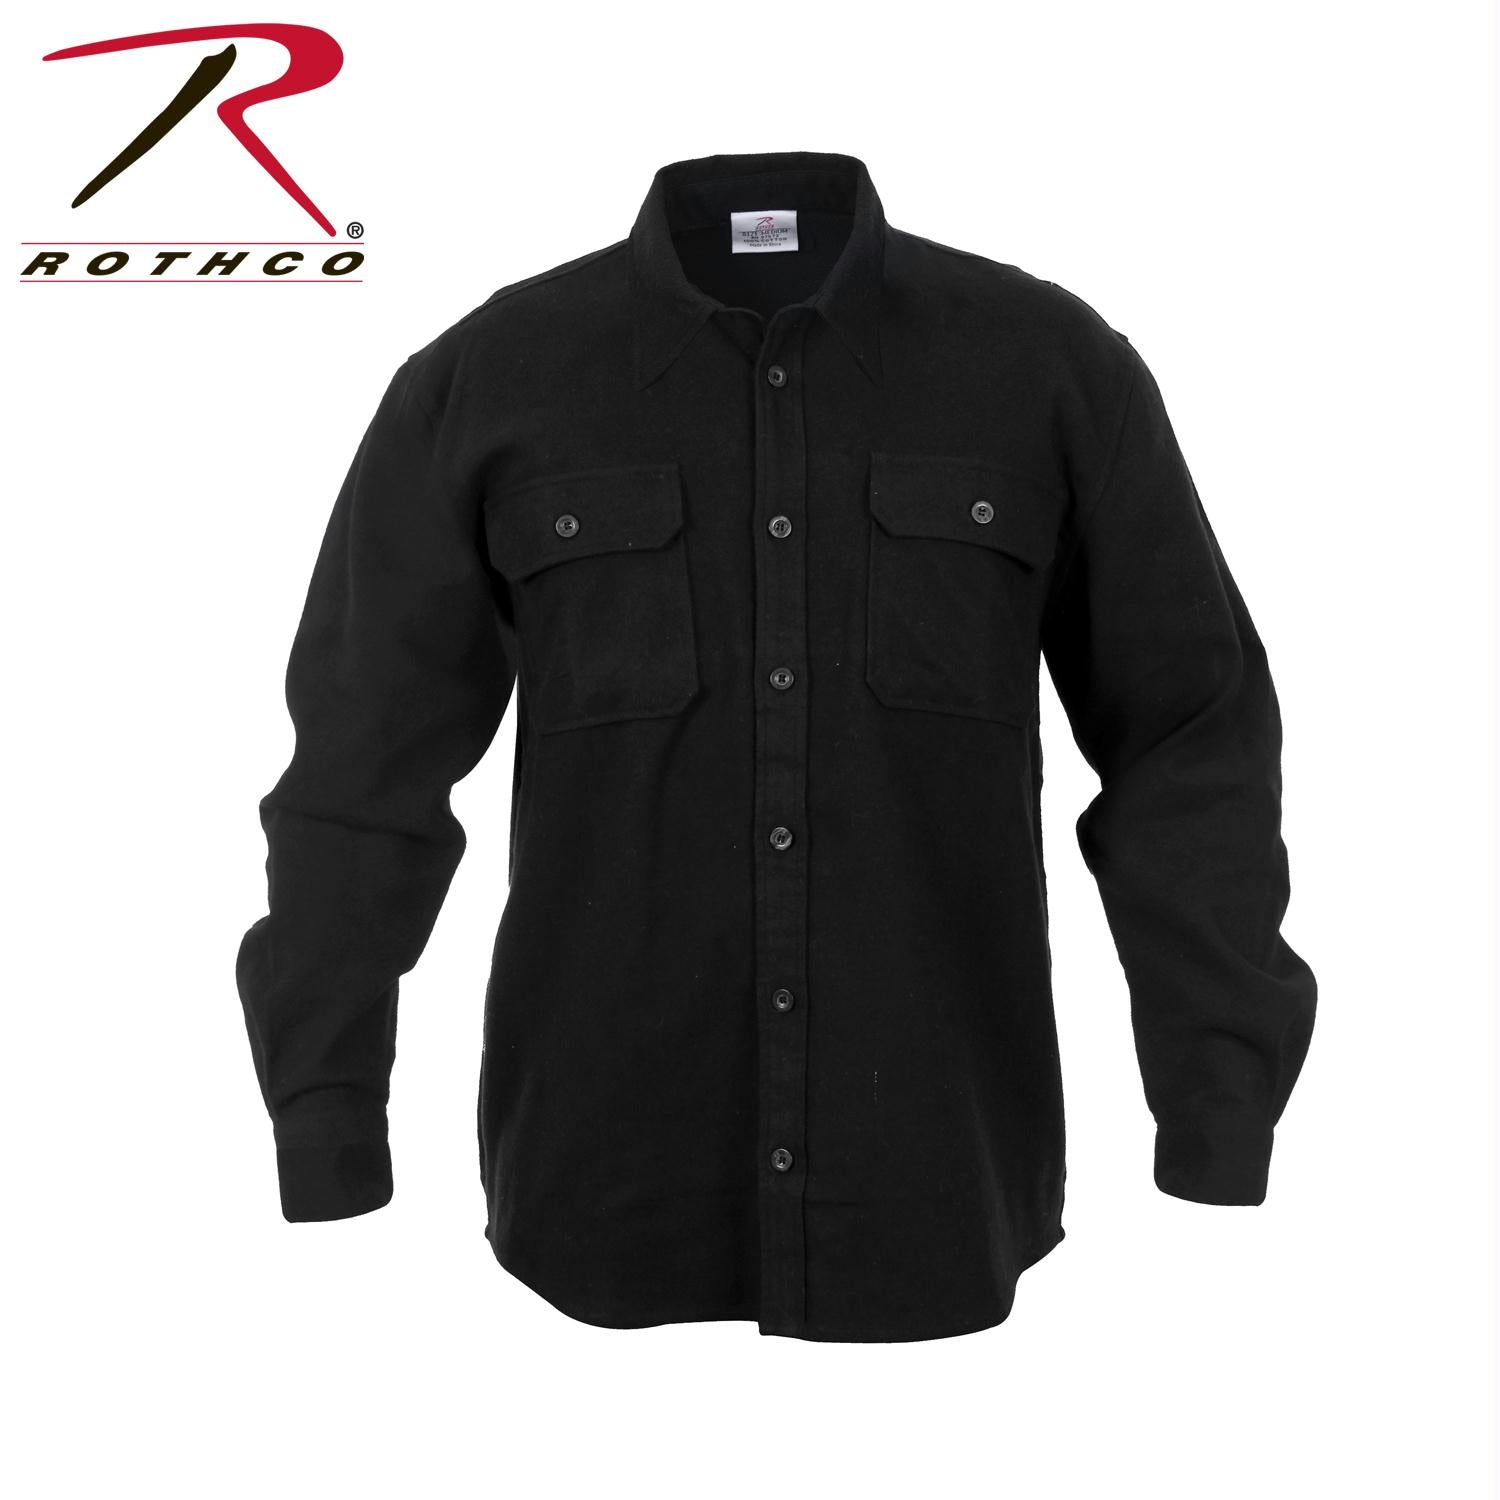 Rothco Heavy Weight Solid Flannel Shirt - Black / 2XL